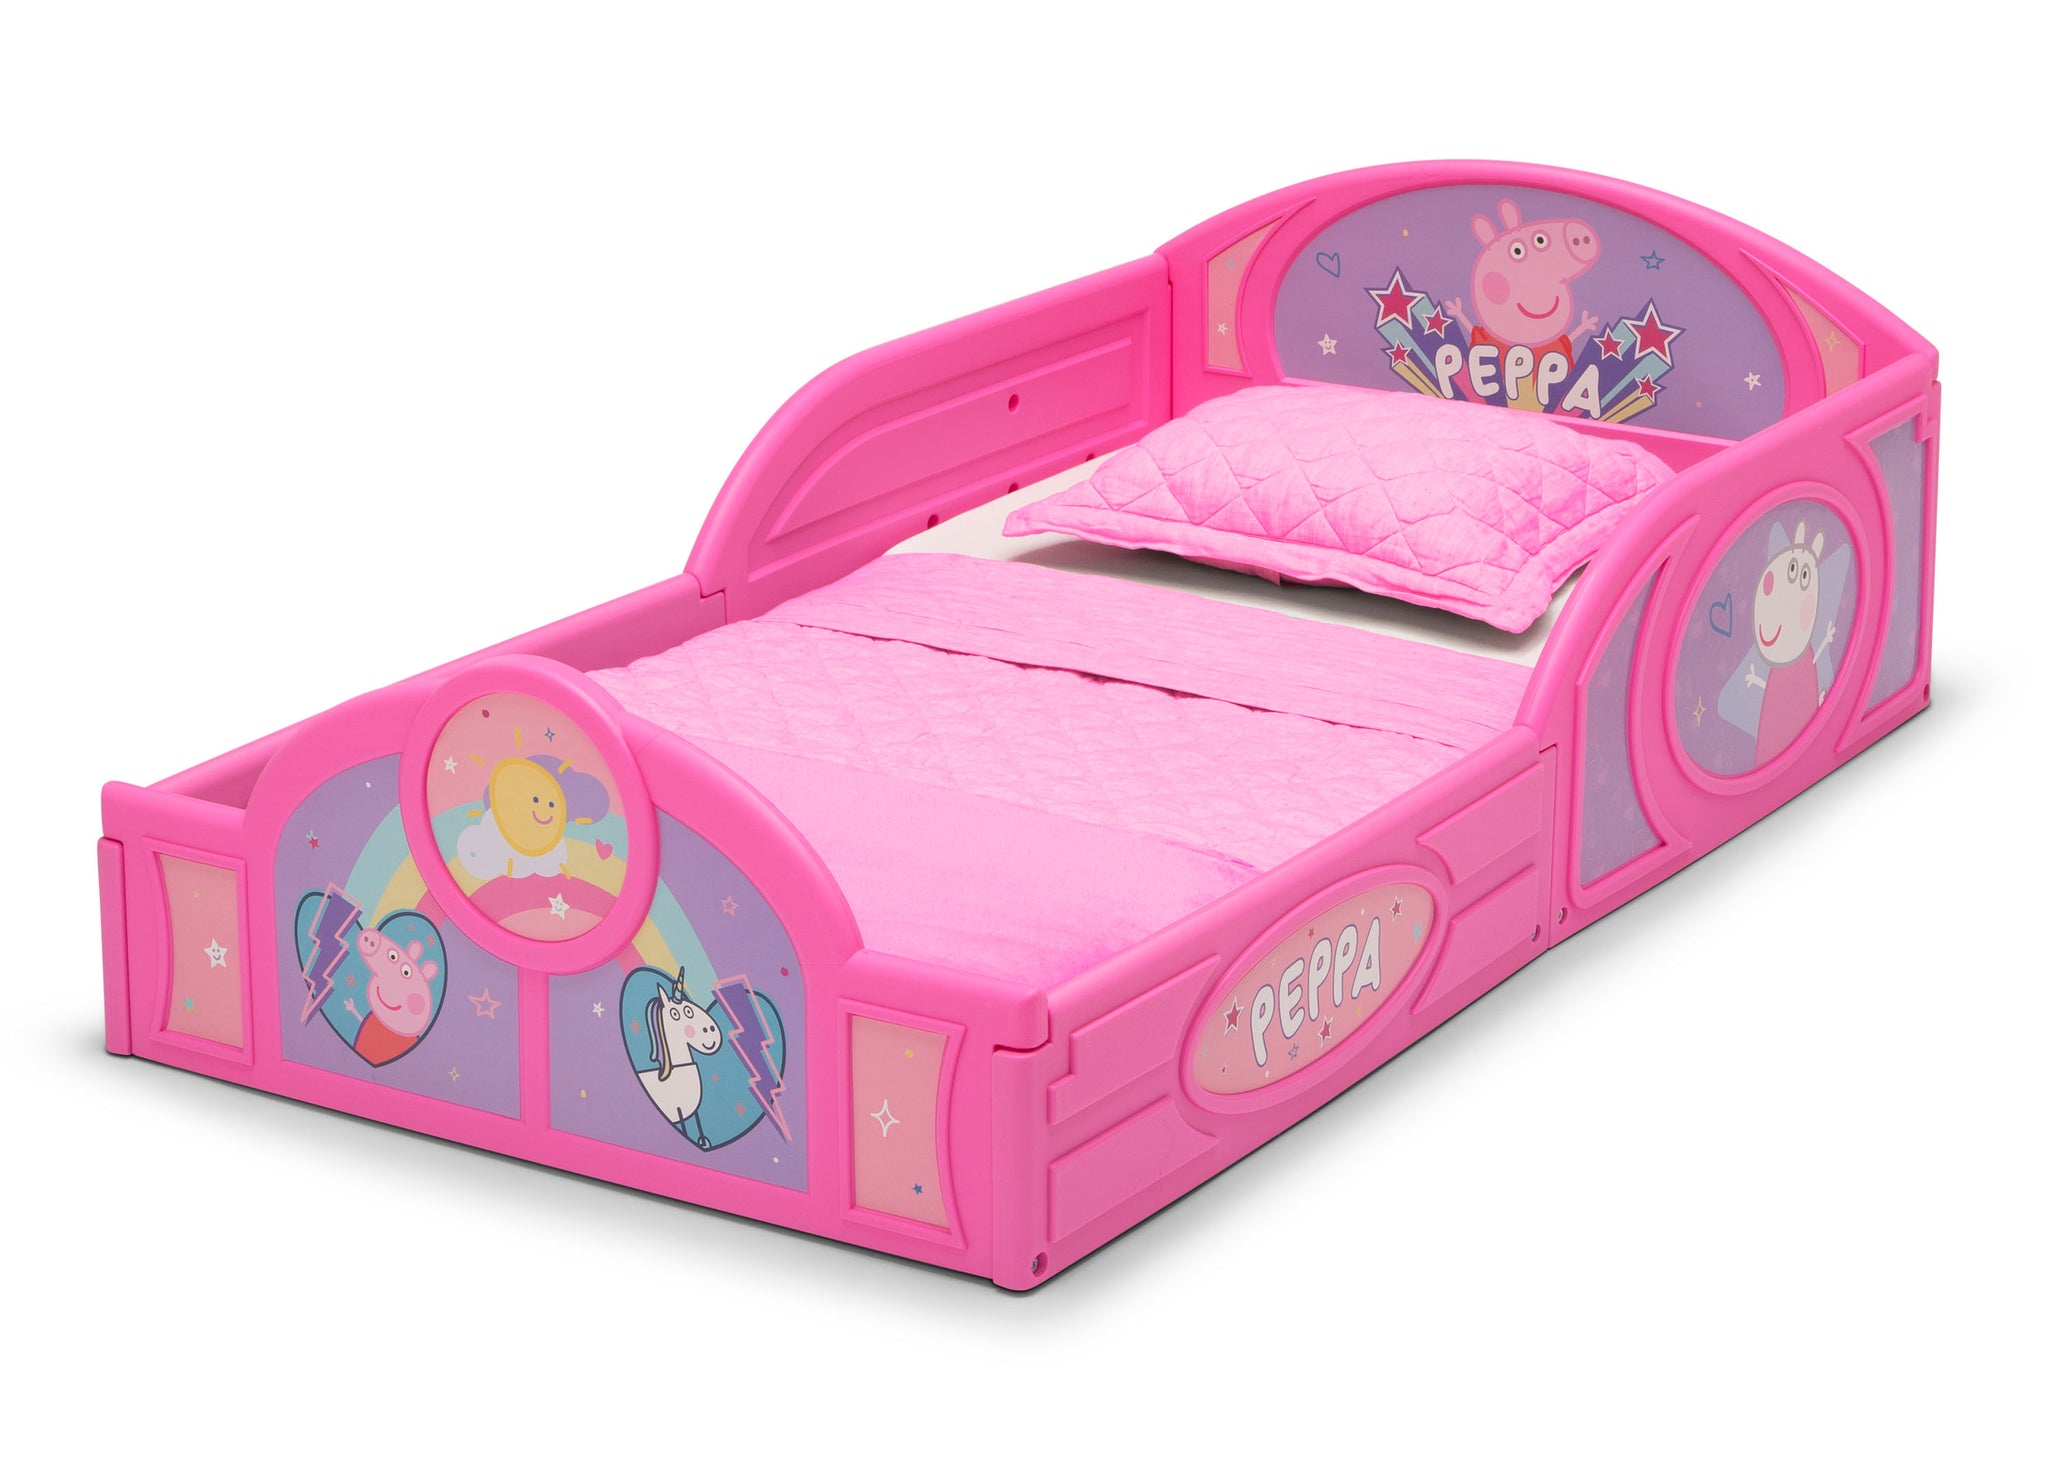 Delta Children Peppa Pig (1171) Plastic Sleep and Play Toddler Bed, Left Silo View